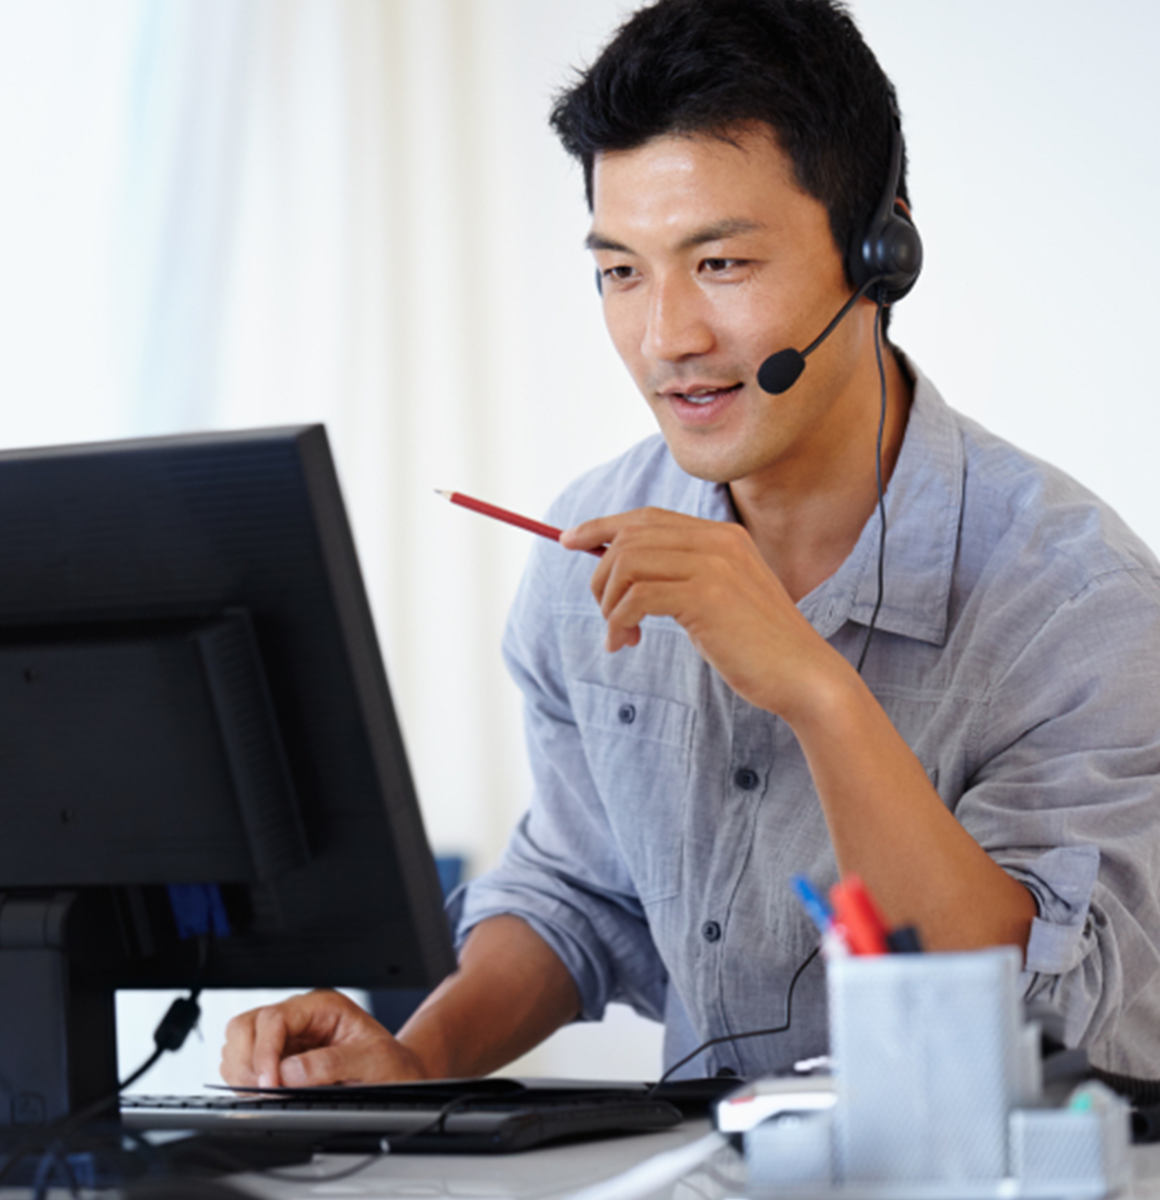 Man with headset offering IaaS solutions powered by VMware and Disaster Recovery Services